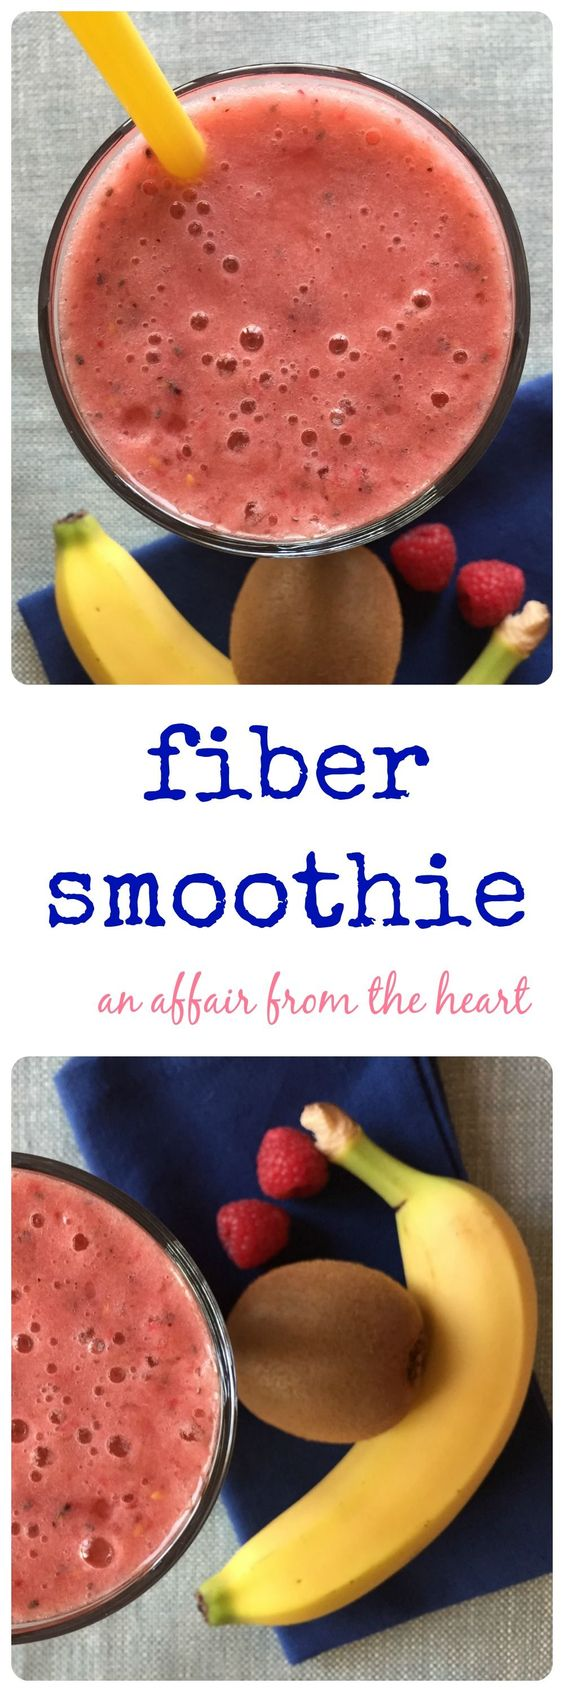 fiber smoothie -anaffairfromthehear.com Fiber + water = helps with weightloss. Drinking a high fiber smoothie in the morning can keep you sustained through to lunch! We think this one is DELICIOUS!